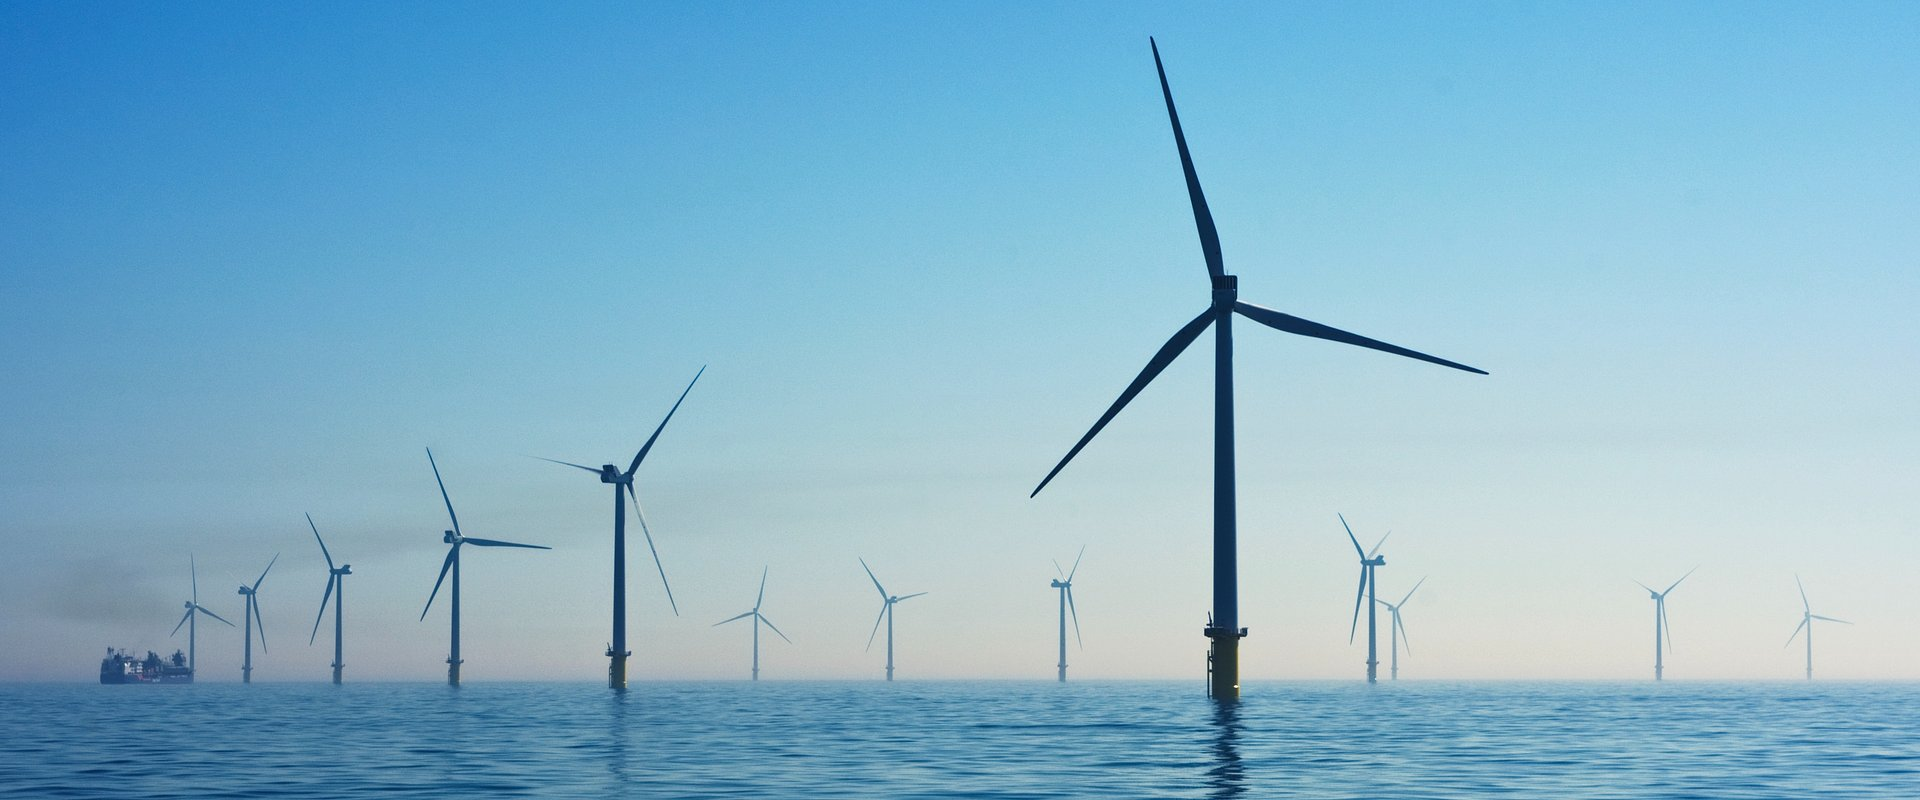 BalticWind.EU launches a call for experts and journalists to join Baltic Offshore news and insight platform